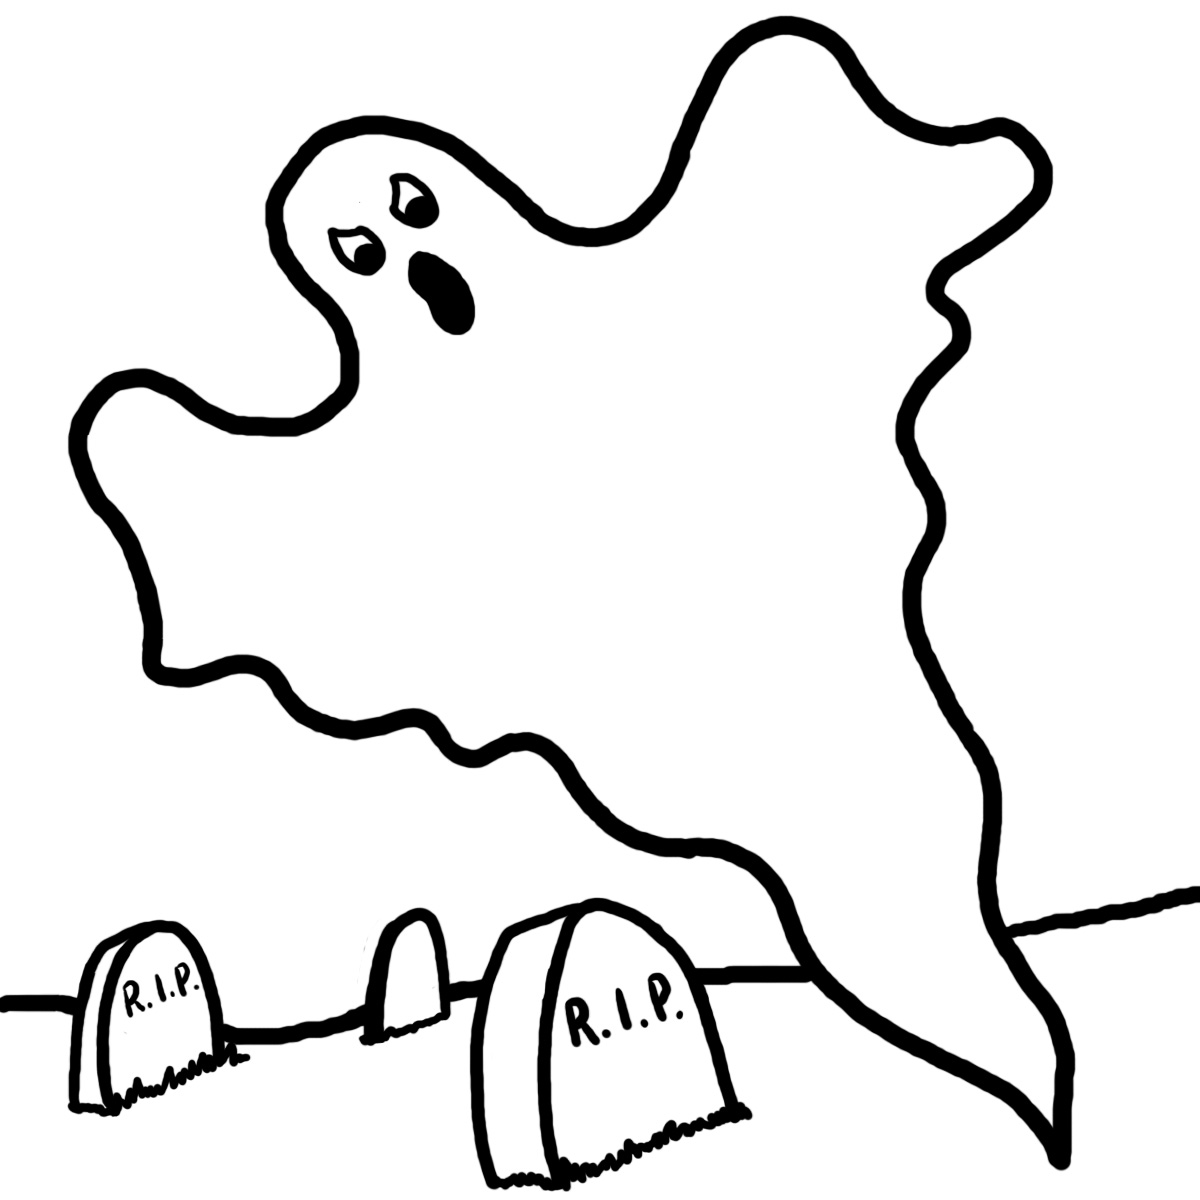 Ghostly clipart creepy Clipart Images Ghost Clipart Clipart